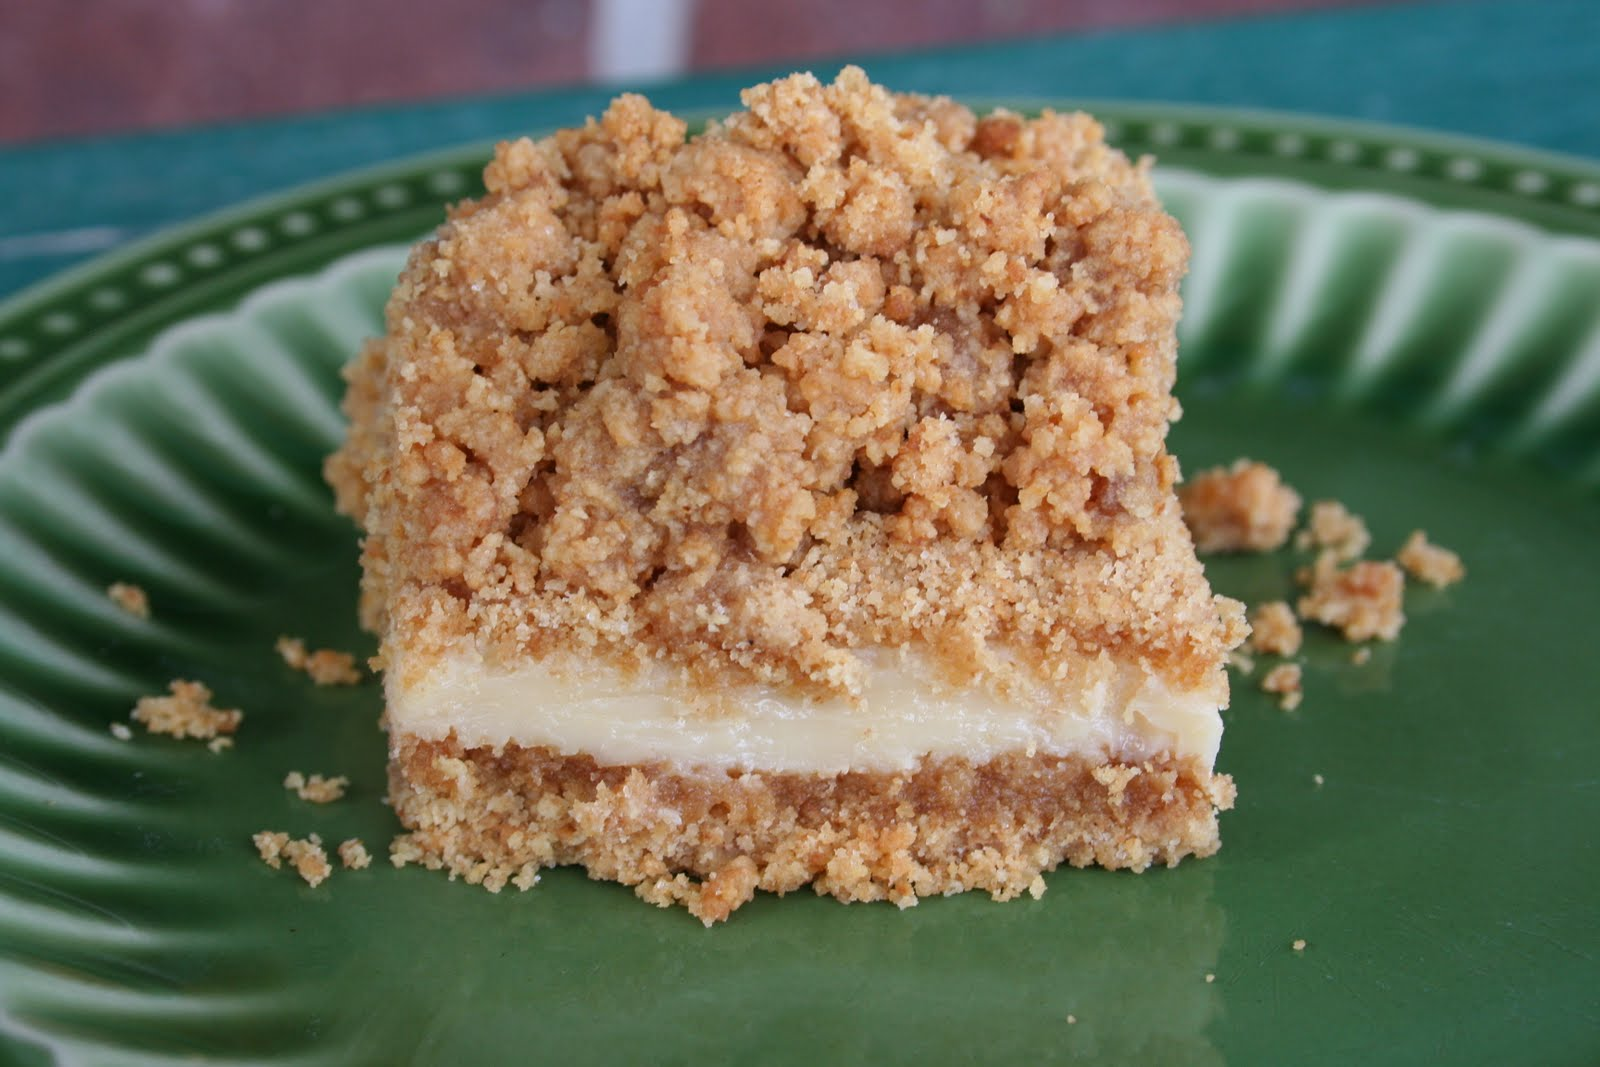 Cool and creamy key lime bars with graham cracker crust and topping.